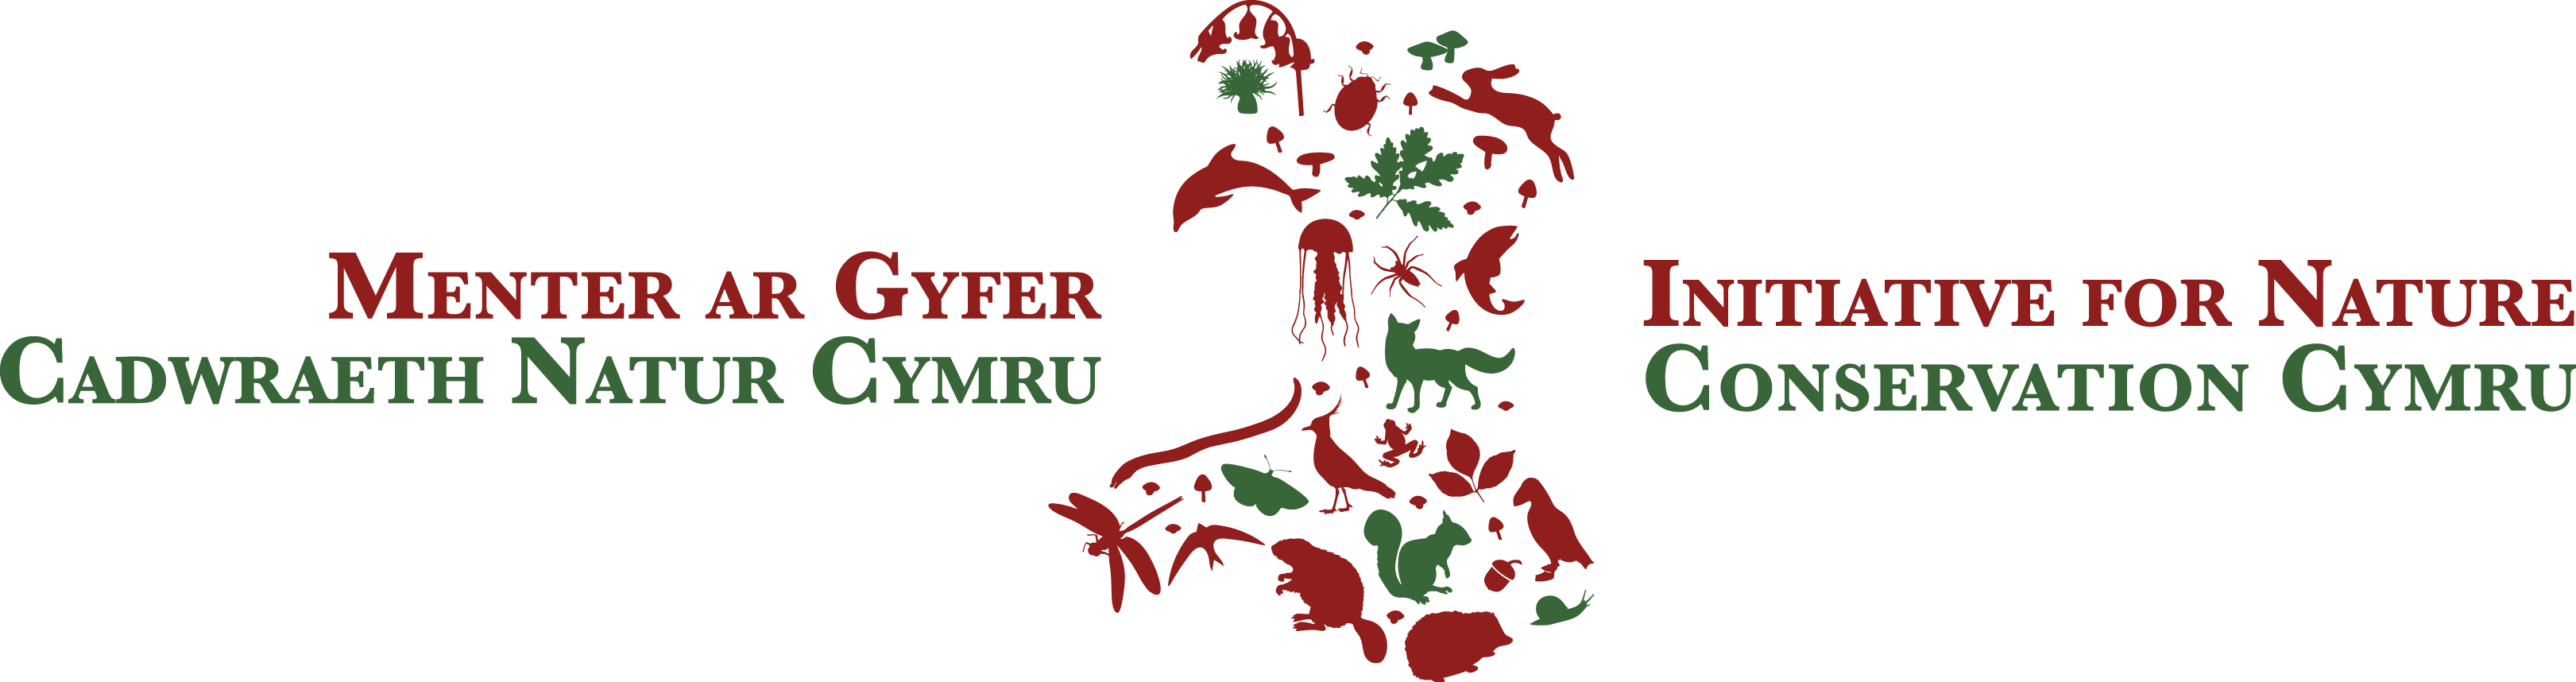 Initiative for Nature Conservation Cymru